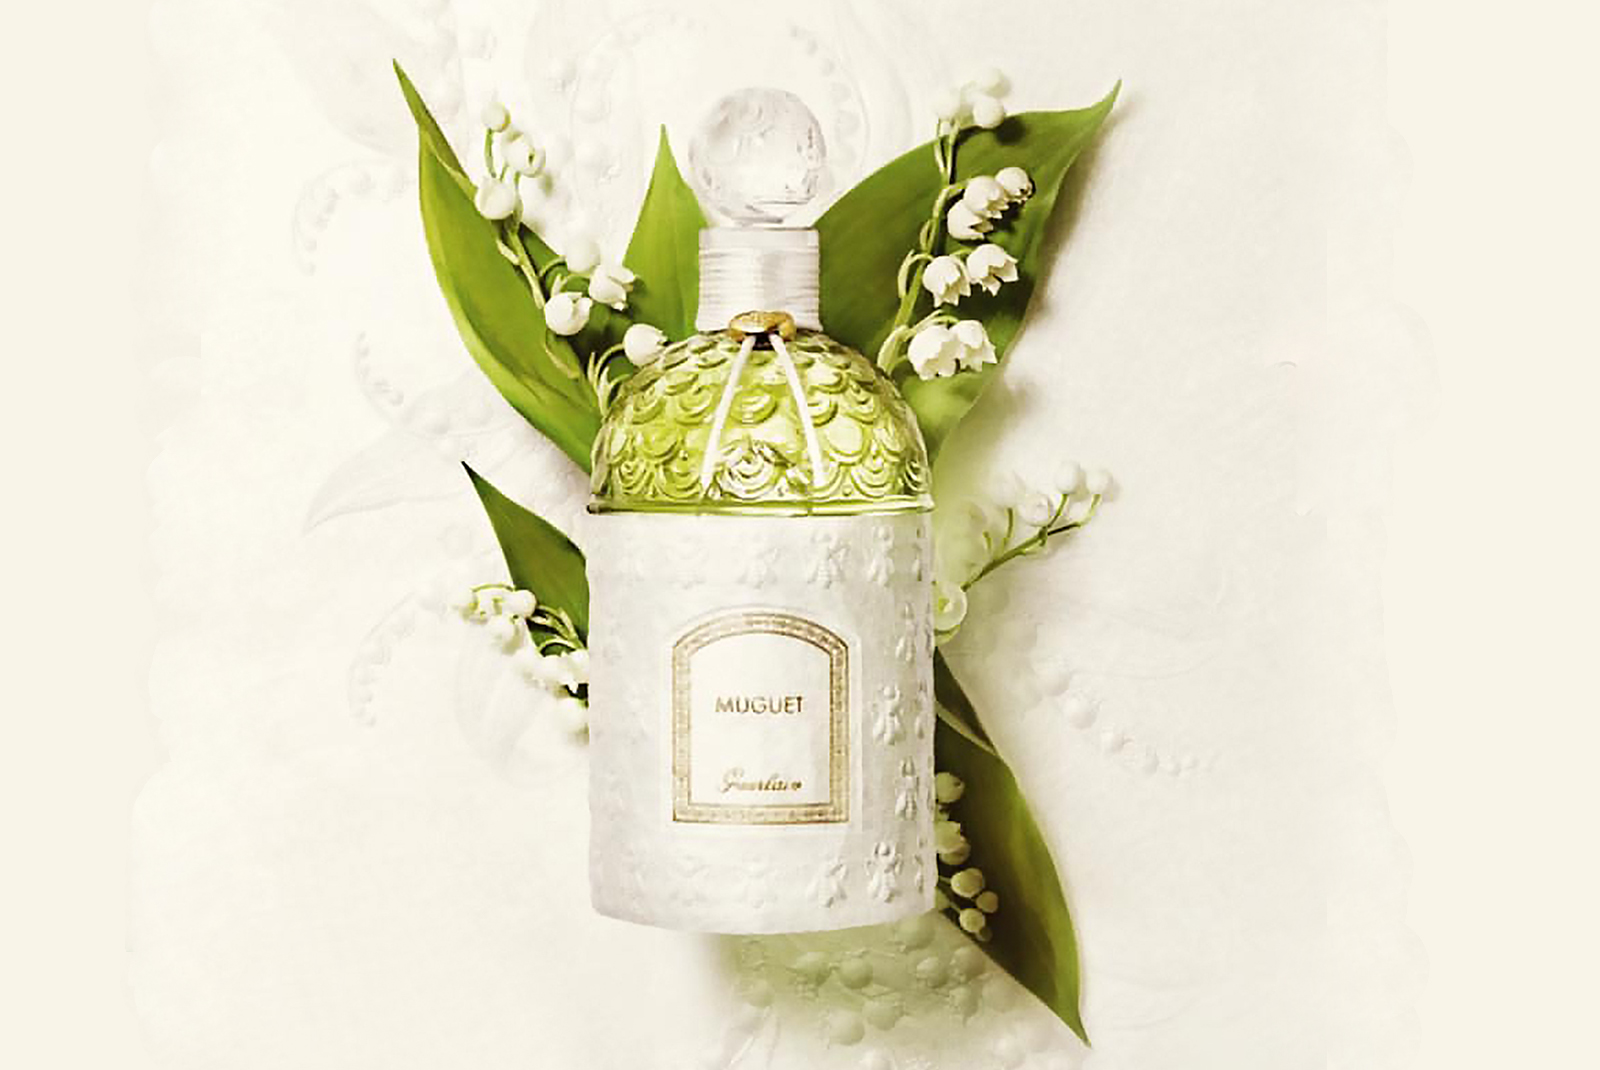 dbf755633 Fragrance from the Exclusive Le Muguet Guerlain Collection